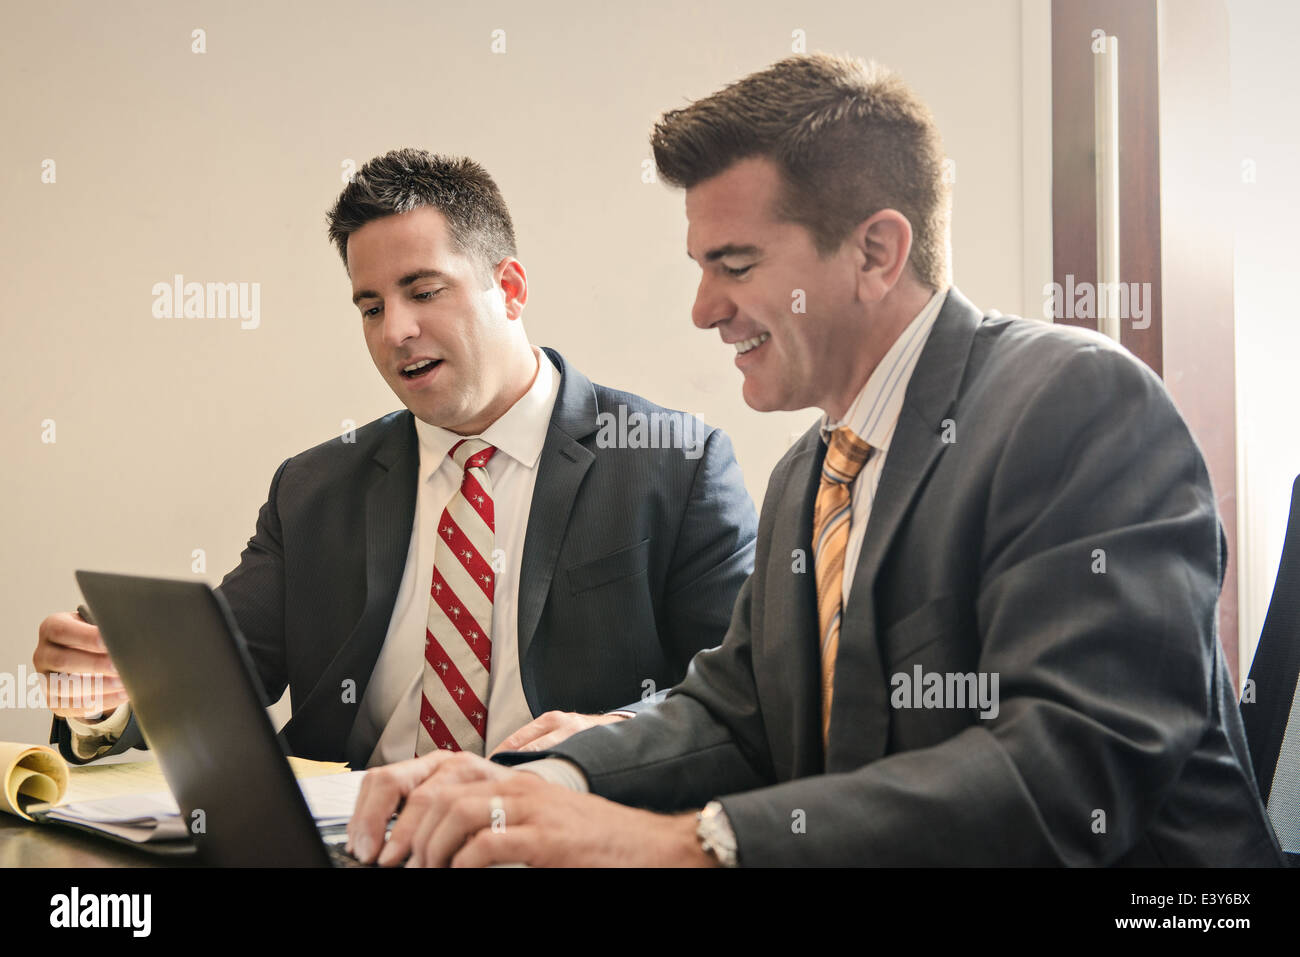 Two male business lawyers having a planning meeting in office - Stock Image